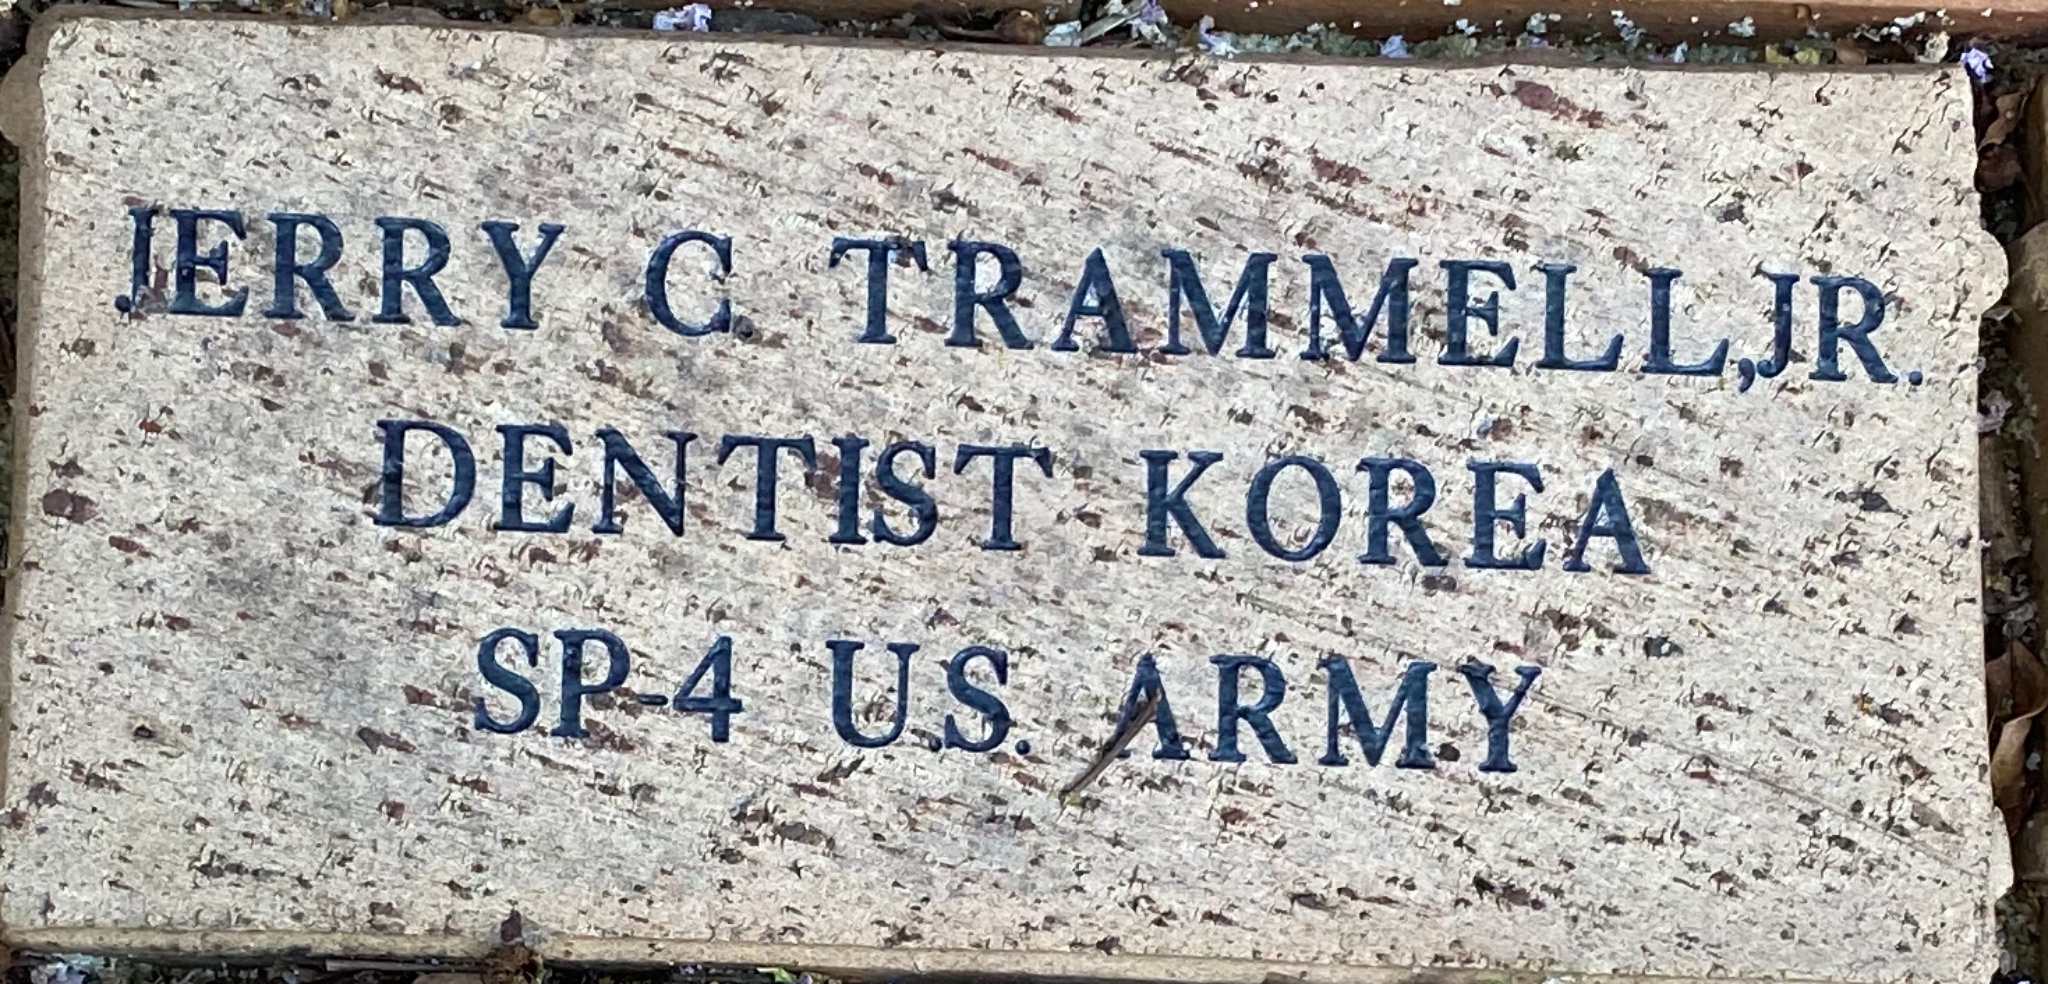 JERRY C. TRAMMELL,JR DENTIST KOREA SP-4 U.S. ARMY